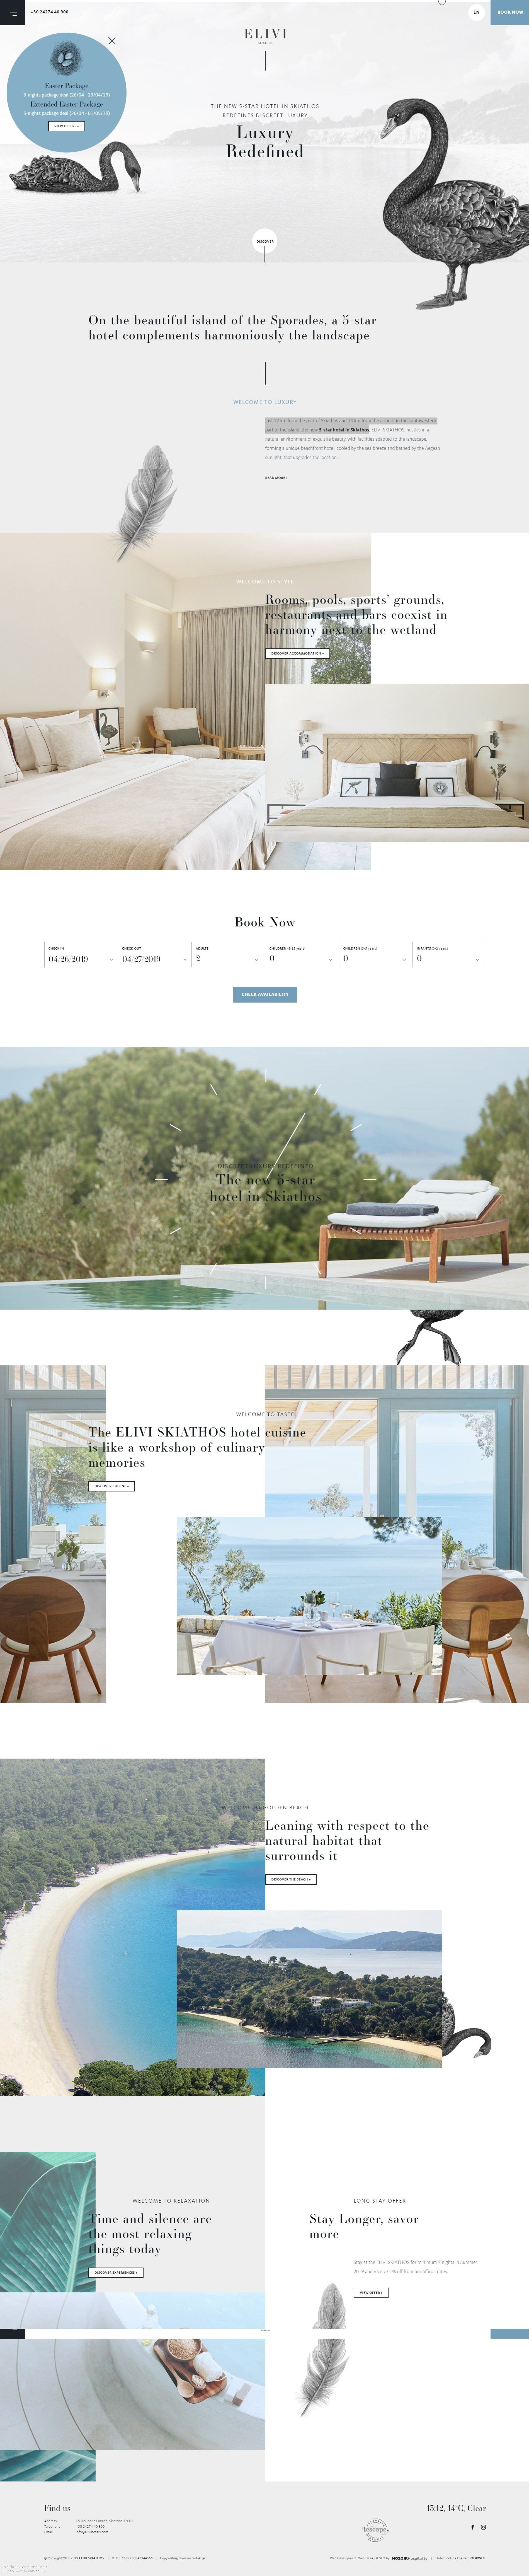 Screenshot of 5 Star Luxury Resort in Skiathos _ Elivi Hotels Skiathos.jpg